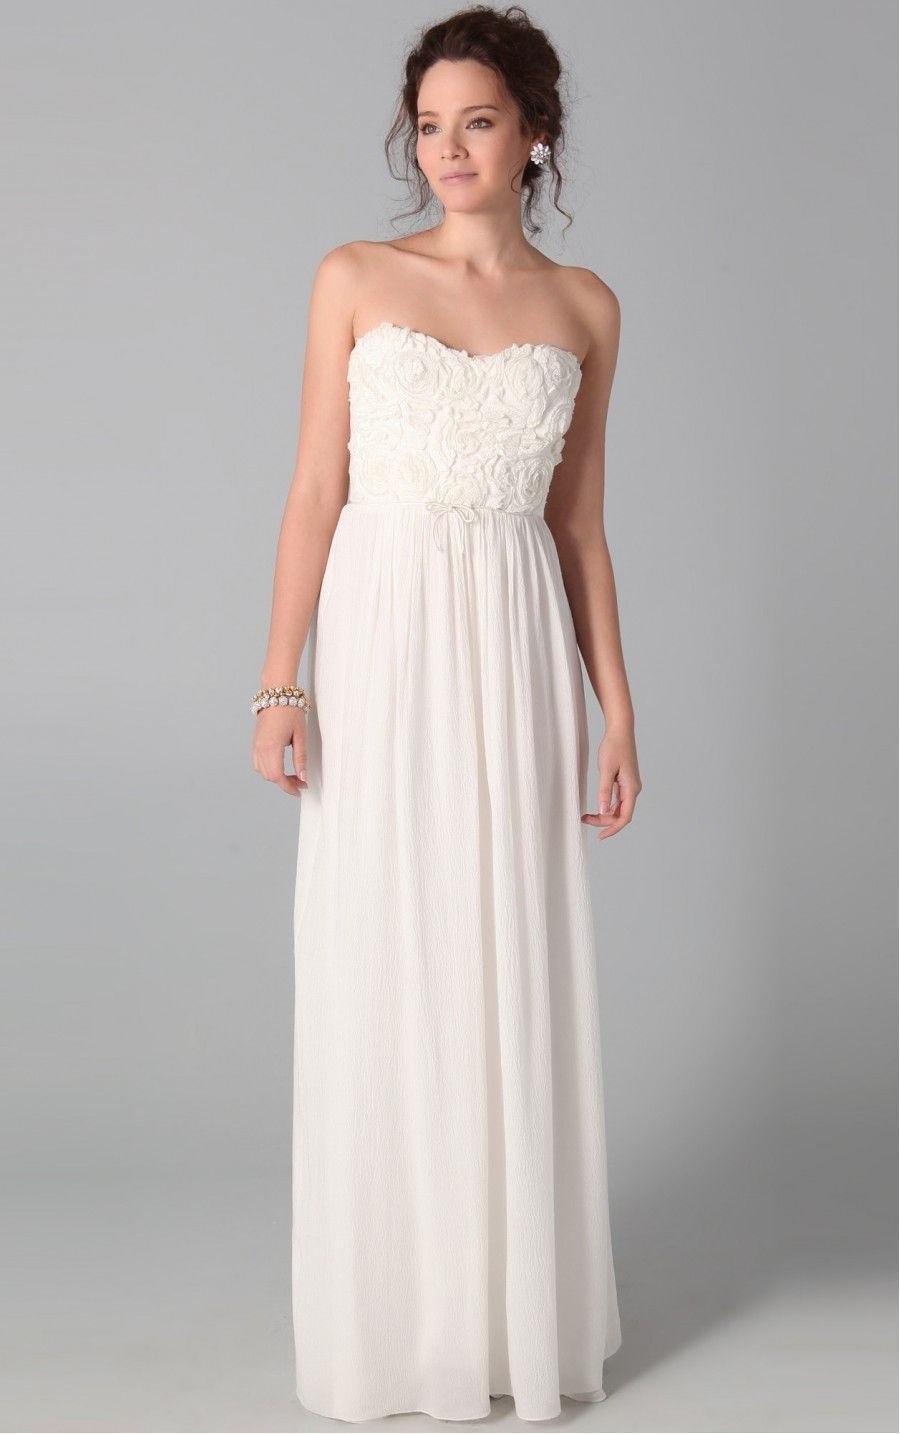 Amazing White Sheath Floor-length Strapless Dress | beautiful attire ...